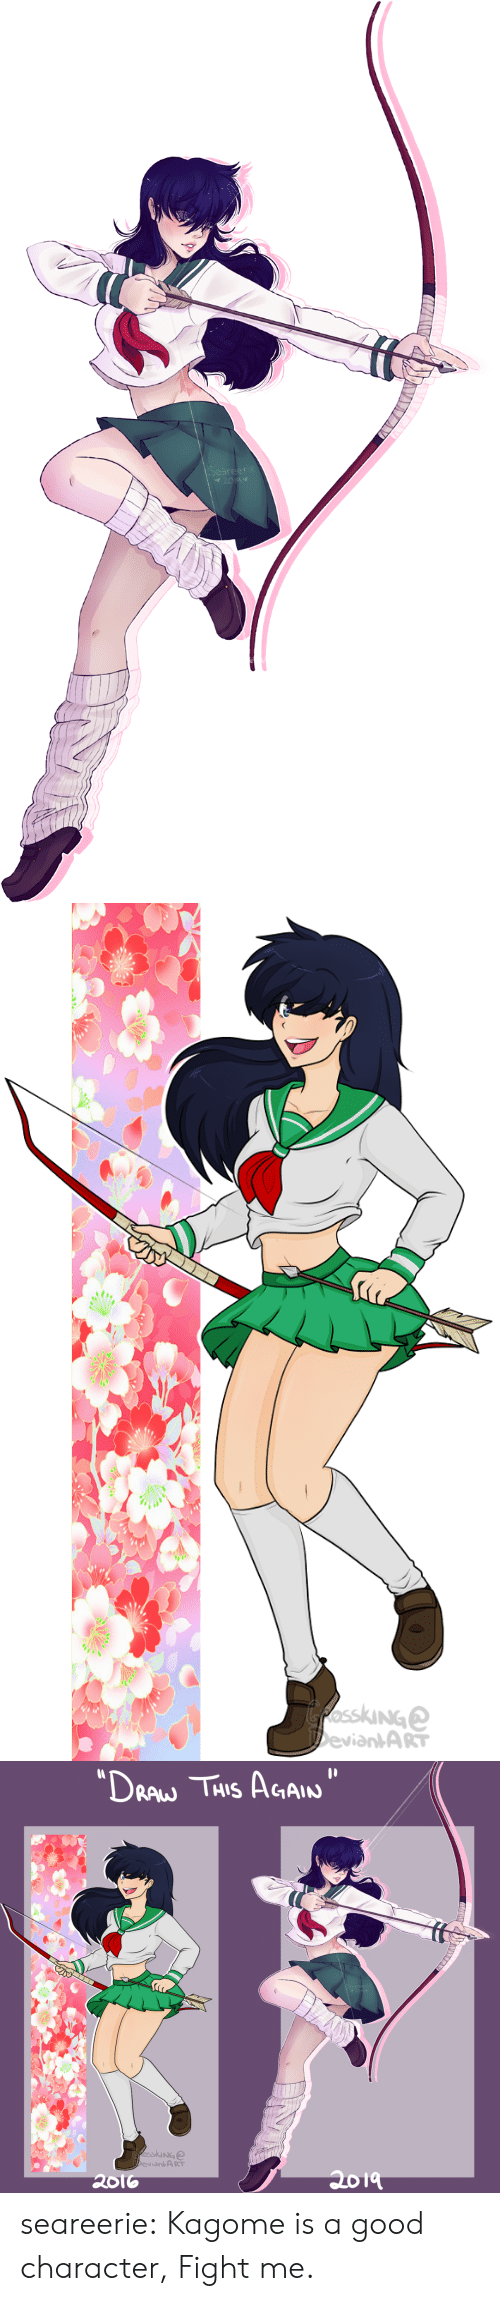 "Target, Tumblr, and Blog: Seareecie  2019   GfosskiNGe  DeviantART   ""DRAW THIS AGAIN  Seareecie  2019  fosskinG  DeviantART  2019  2016 seareerie:  Kagome is a good character, Fight me."